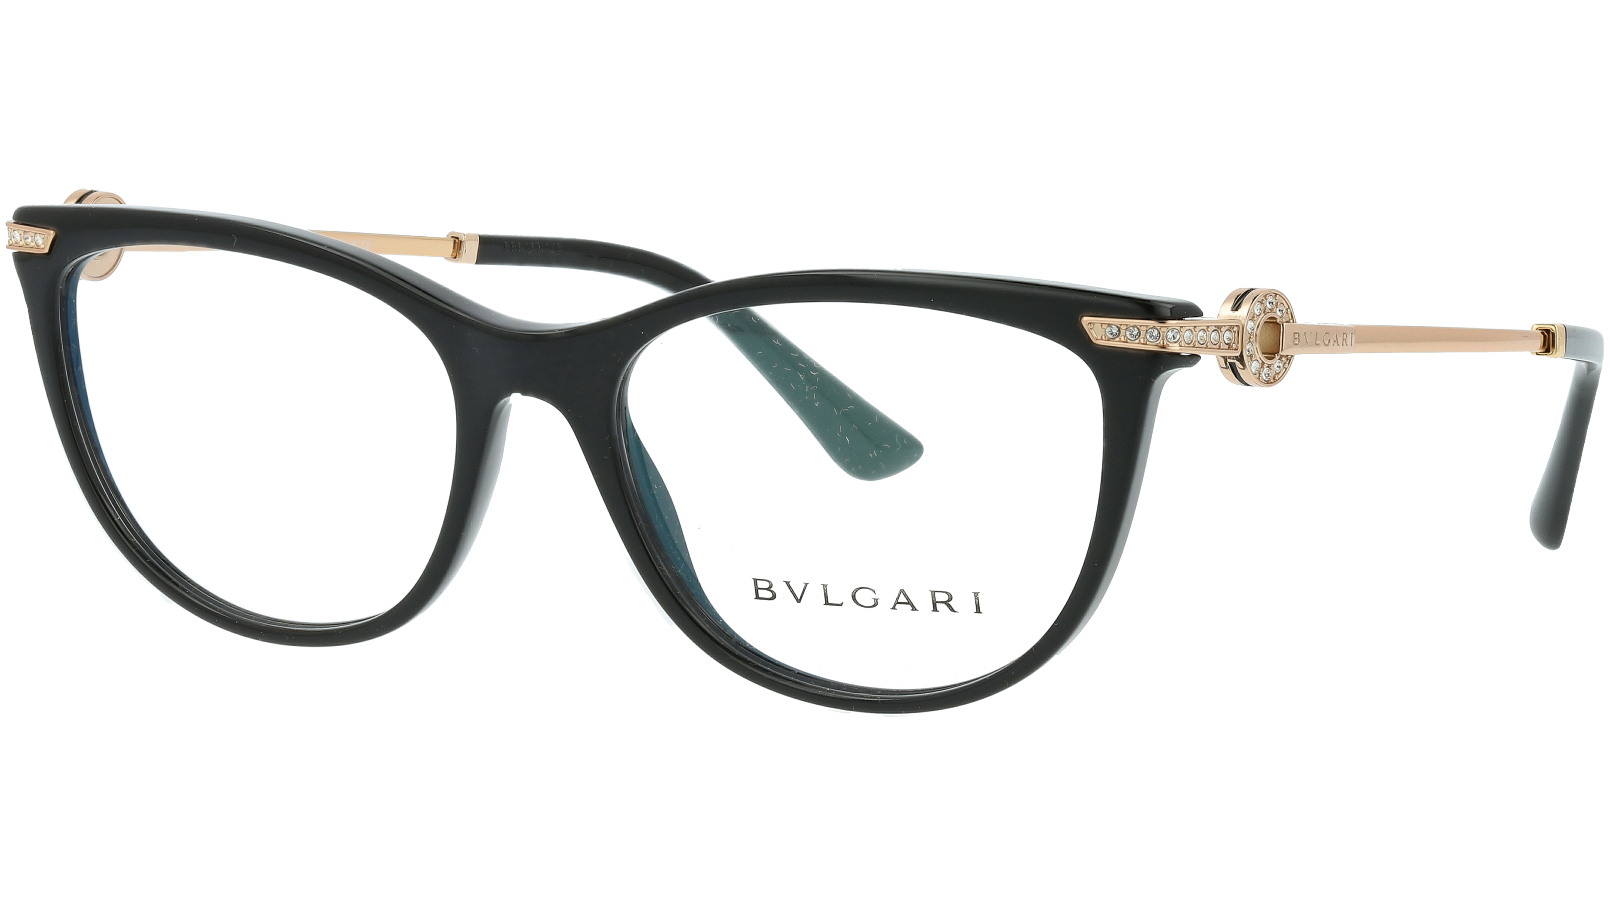 BVLGARI BV4155B 501 54 BLACK Glasses